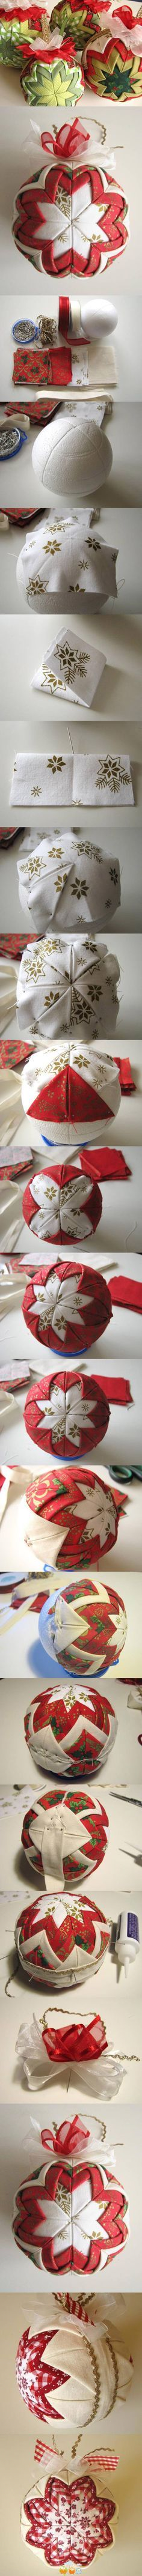 Step by step for a quilted ornament.